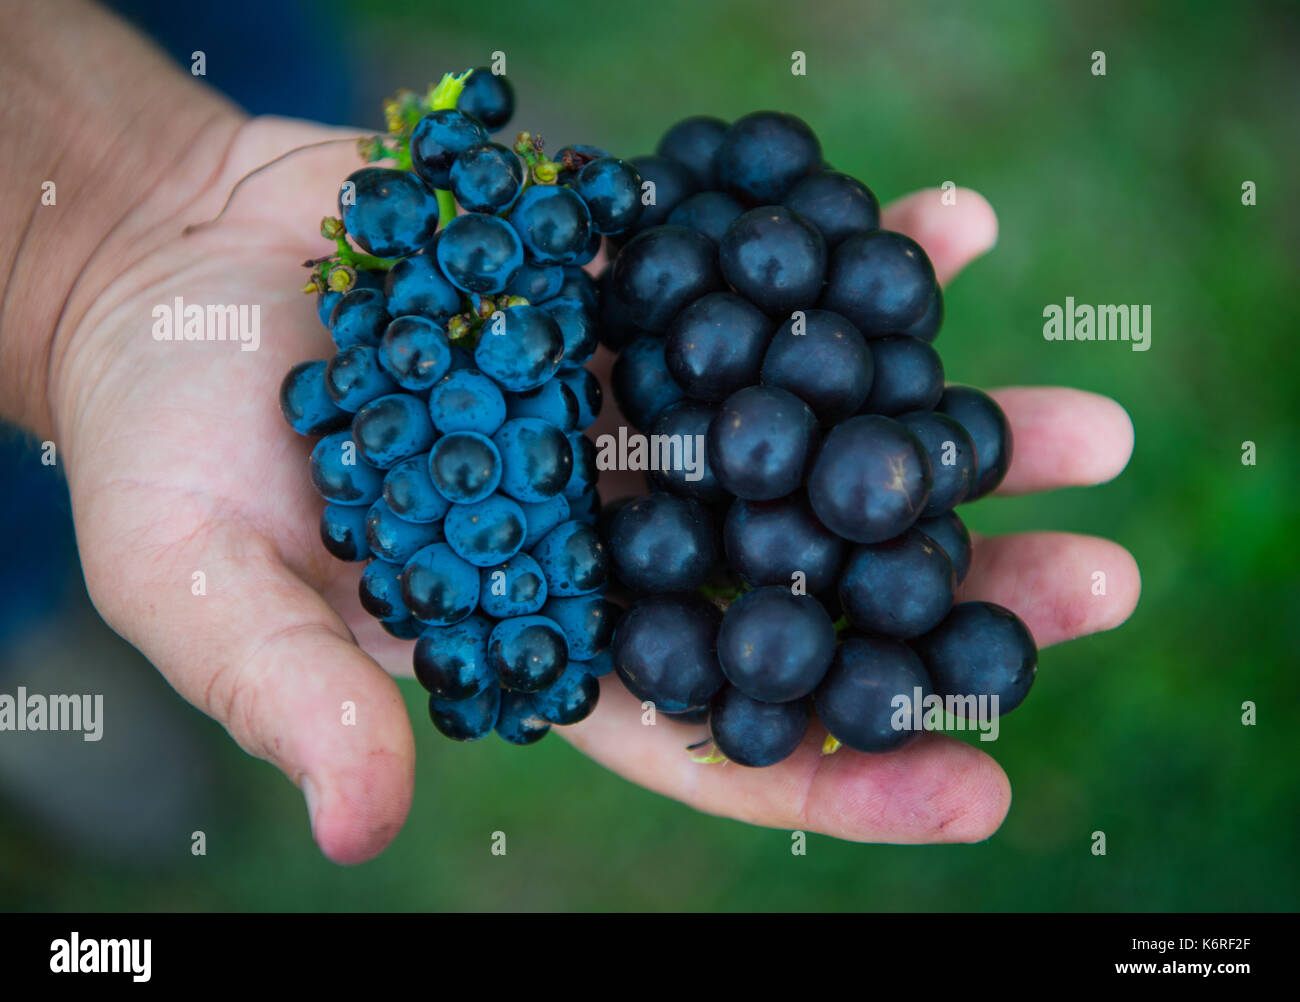 Gundheim, Germany. 5th Sep, 2017. The vine variety detective Andreas Jung can be seen between historical vines in Gundheim, Germany, 5 September 2017. Jung has rediscovered many historical vine varieties and secured their genetic material. Photo: Andreas Arnold/dpa/Alamy Live News - Stock Image